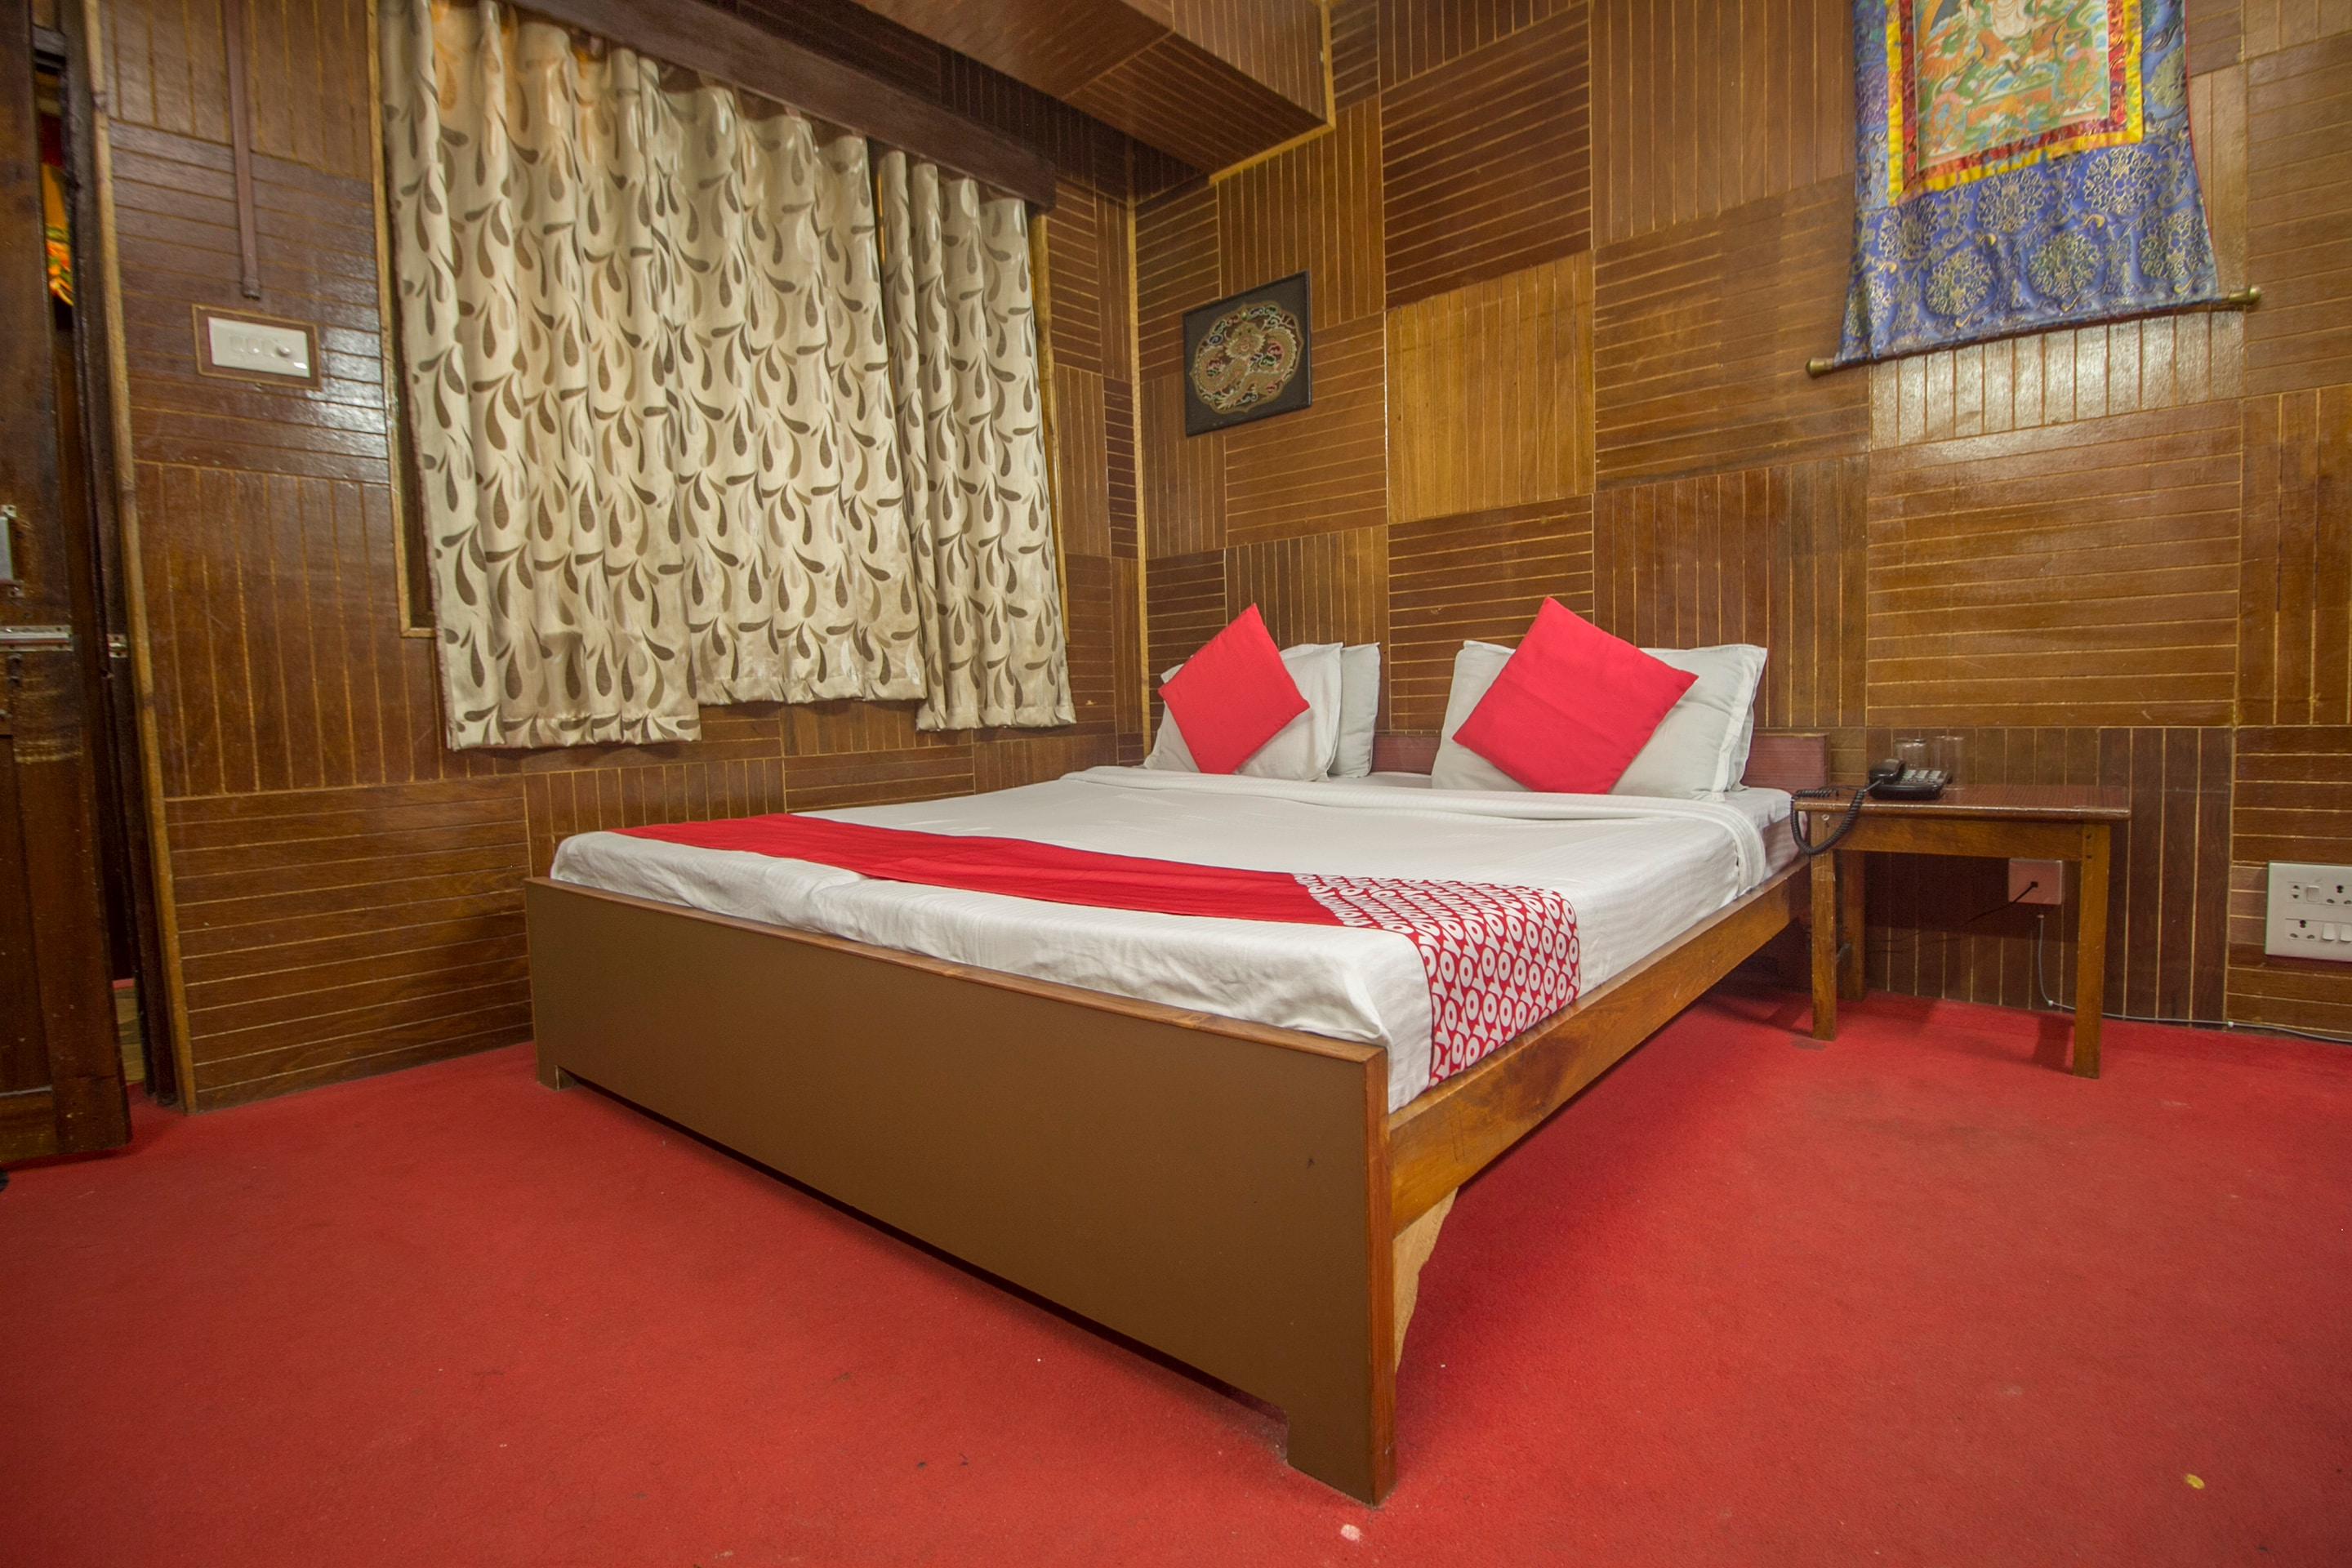 Oyo 12214 Hotel Soyang Gangtok- Updated Photos, Reviews, Price & Offers